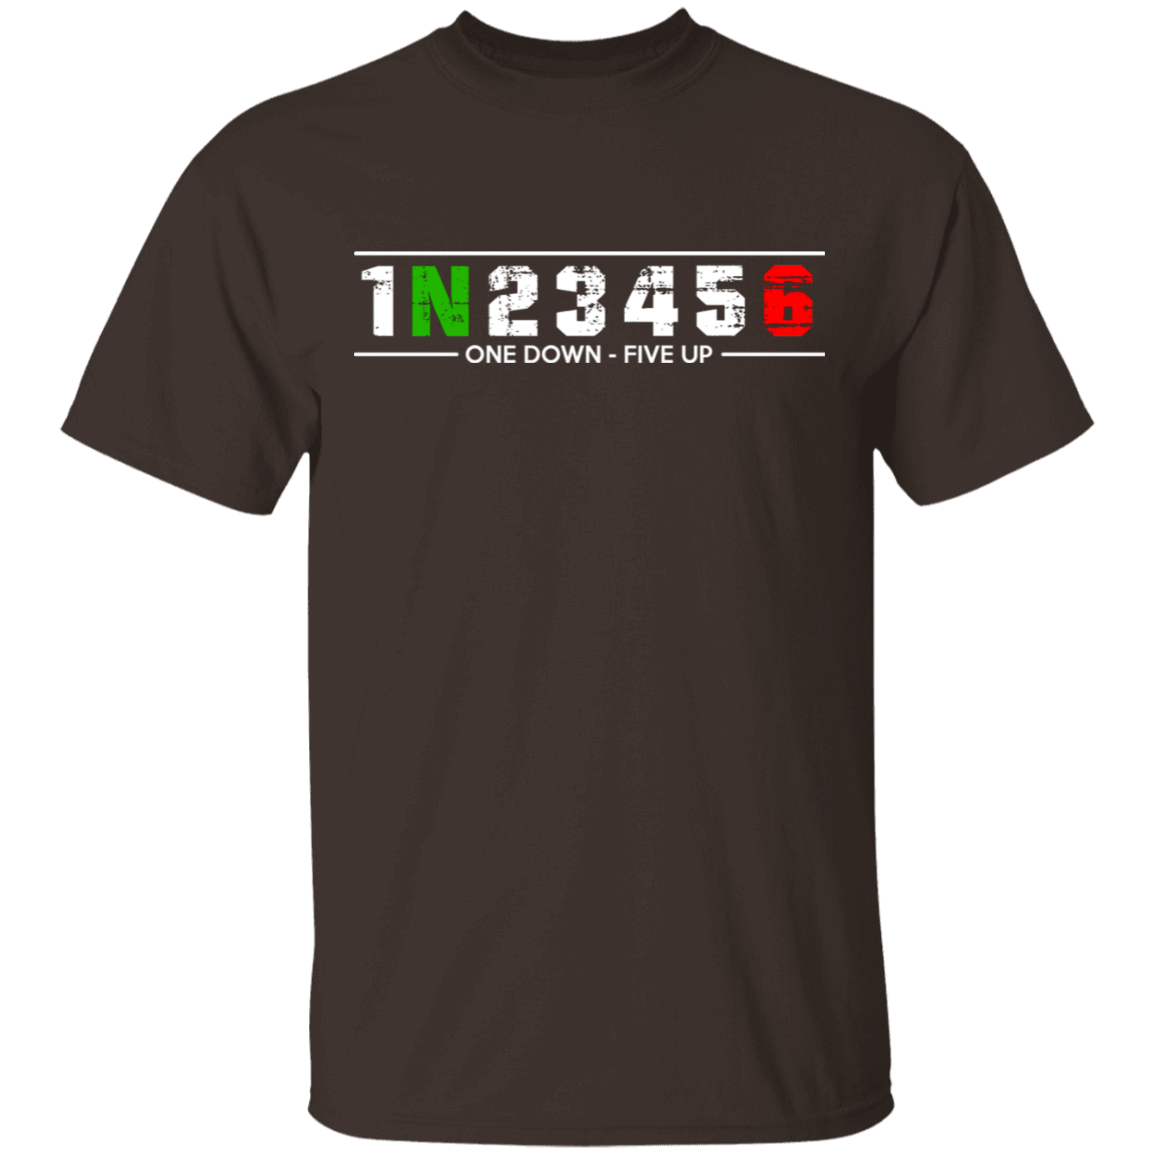 1 N 2 3 4 5 6 One Down Five Up T-Shirts, Hoodies, Tank 1049-9956-81647151-48152 - Tee Ript